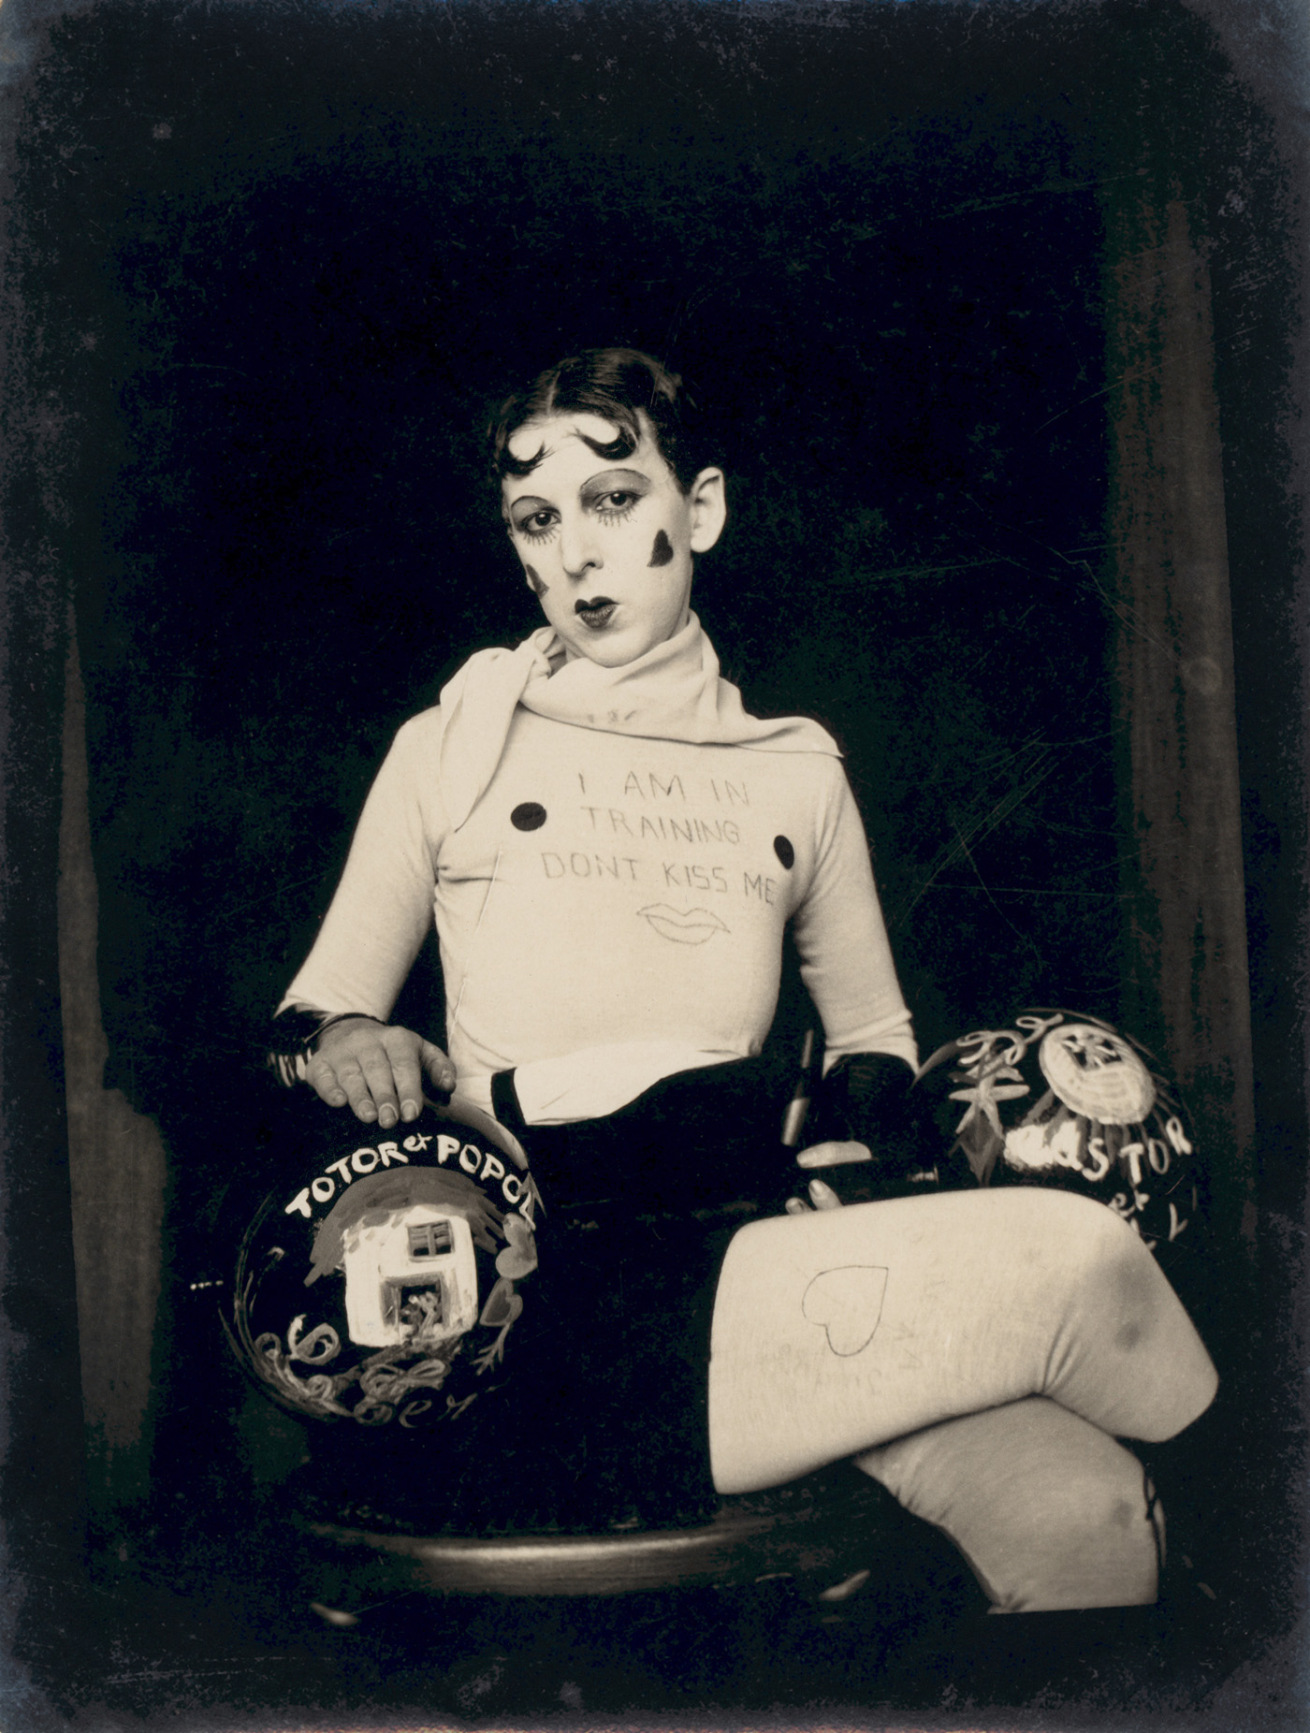 Fotó: Claude Cahun: I am in training don't kiss me, c. 1927 © Jersey Heritage Coillections